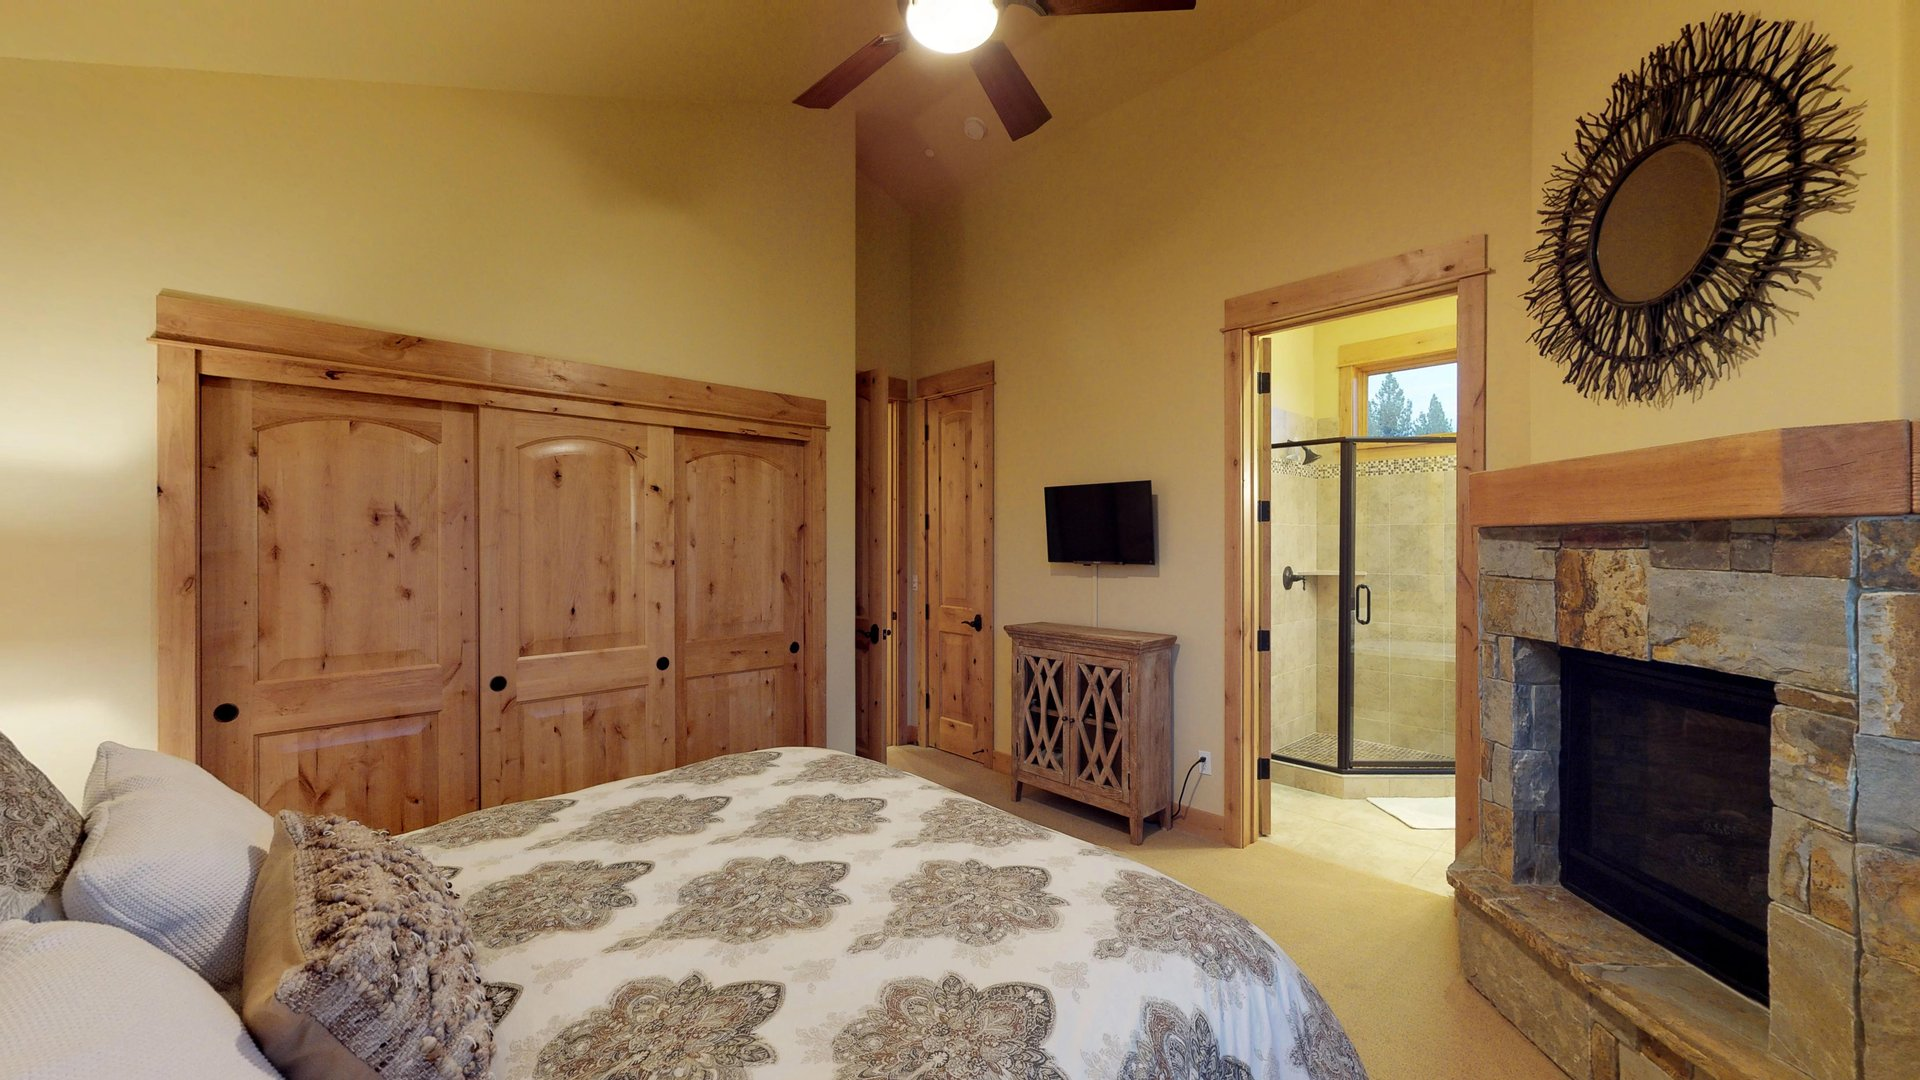 Bedroom Includes a Stone Fireplace and TV.